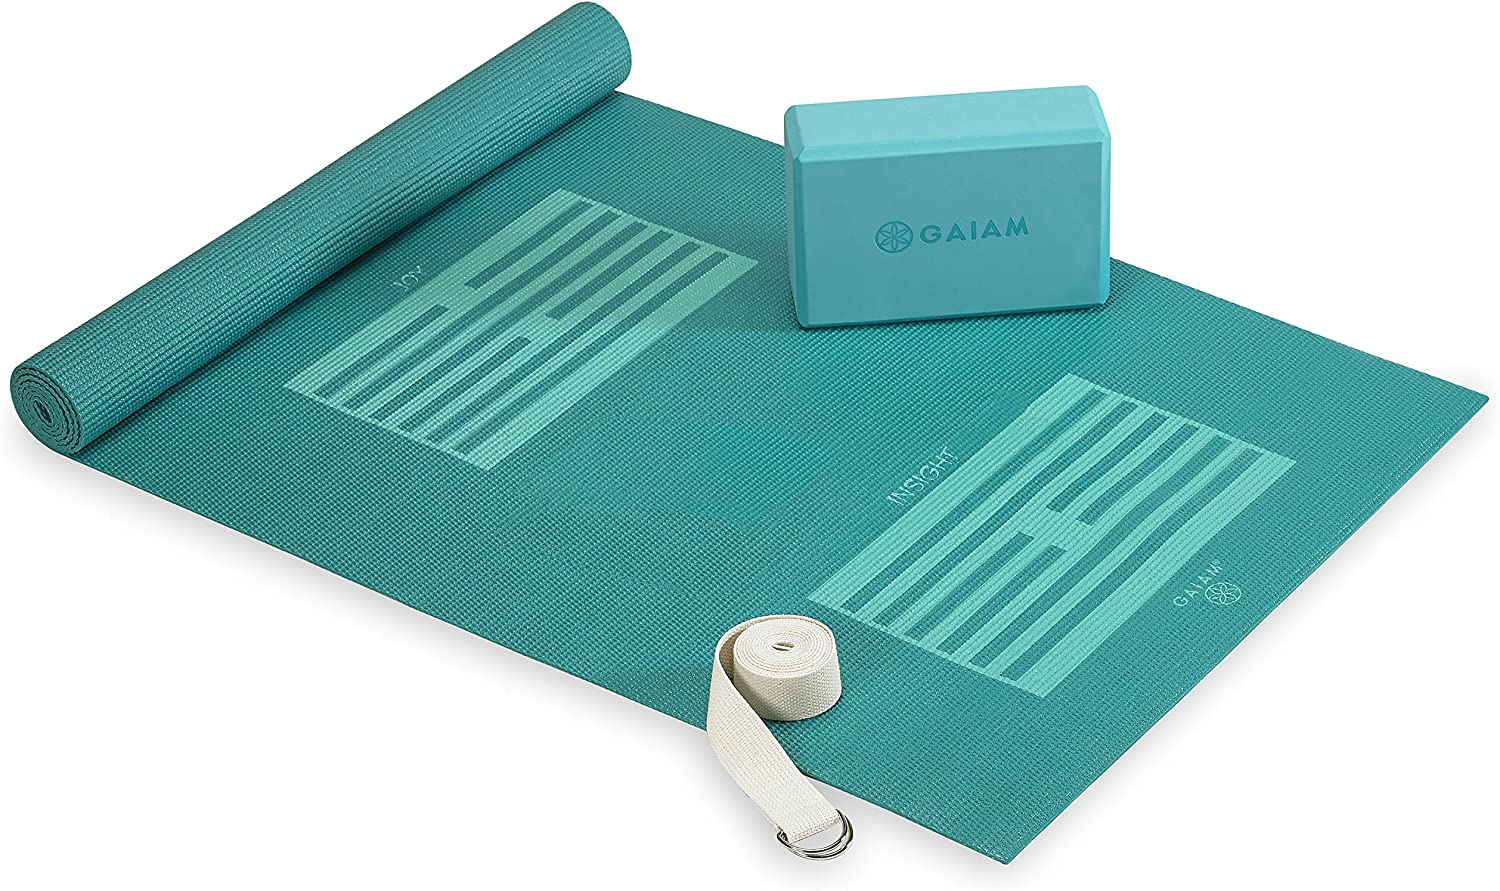 Gaiam Beginners Yoga Starter Kit (Yoga Mat, Yoga Block, Yoga Strap)